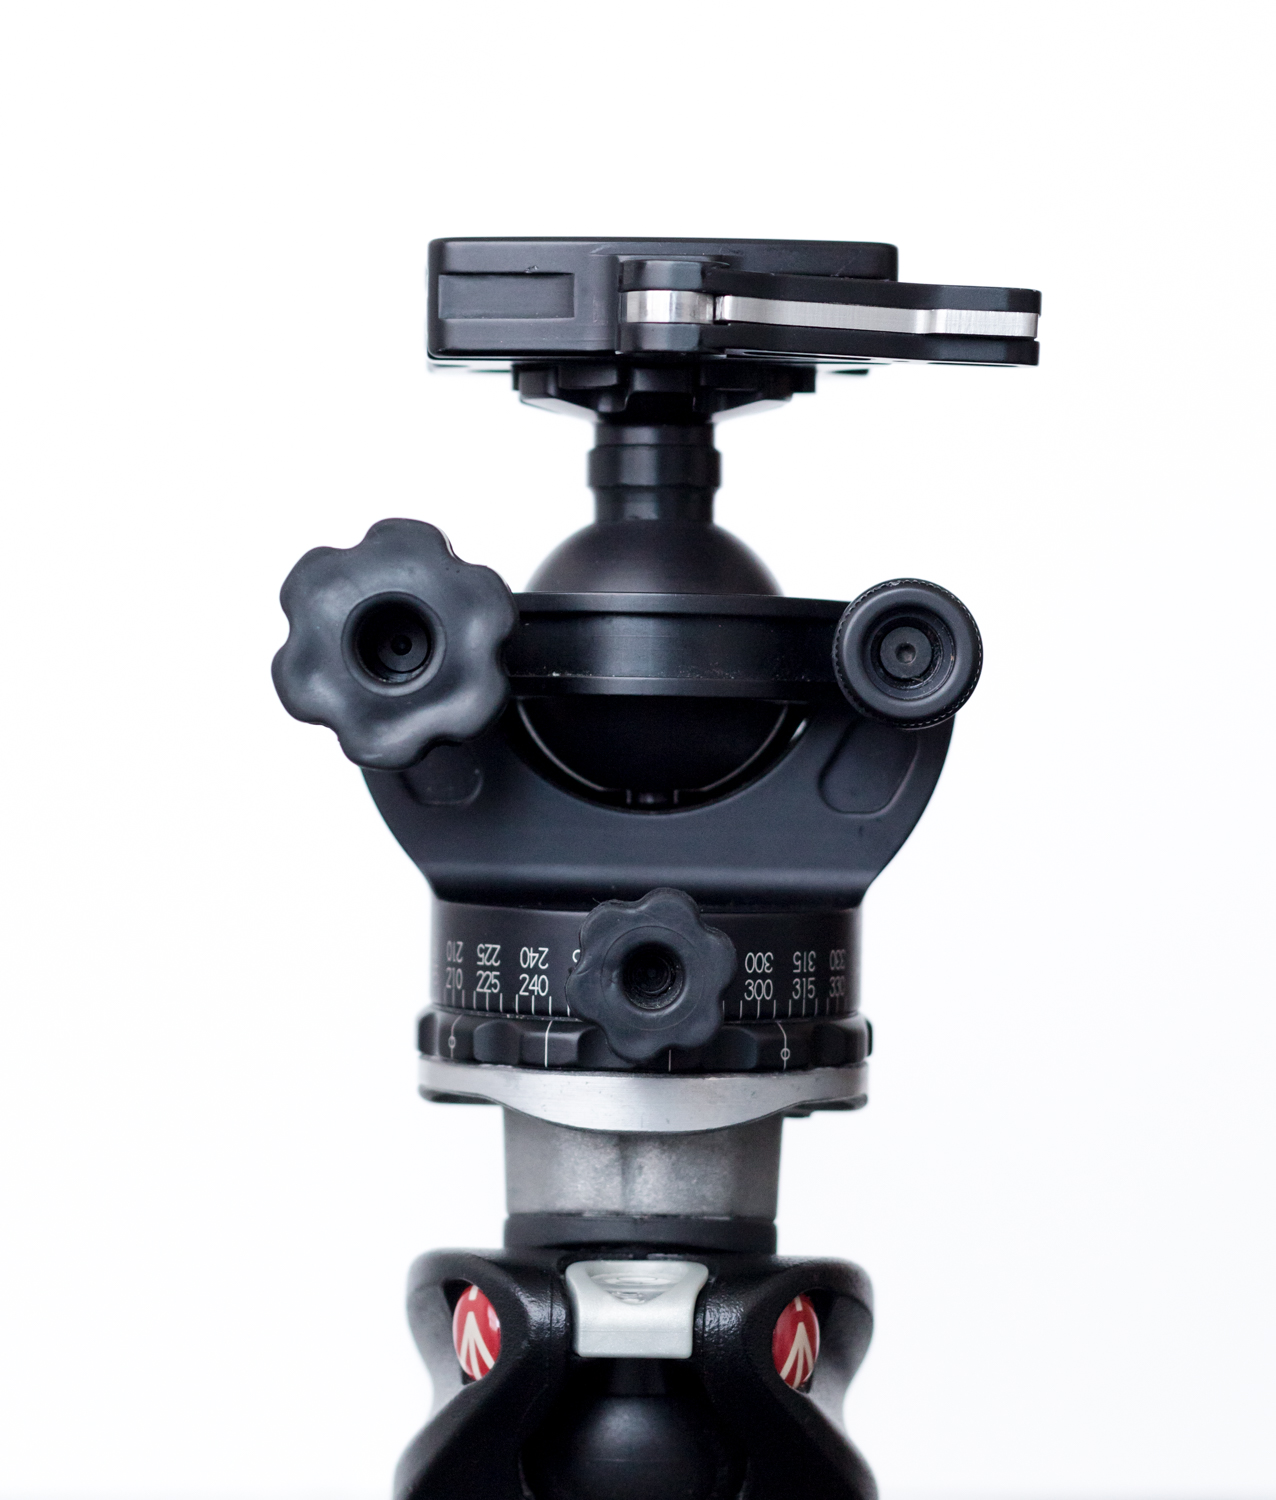 Review - Acratech GP Ball Head for Tripods